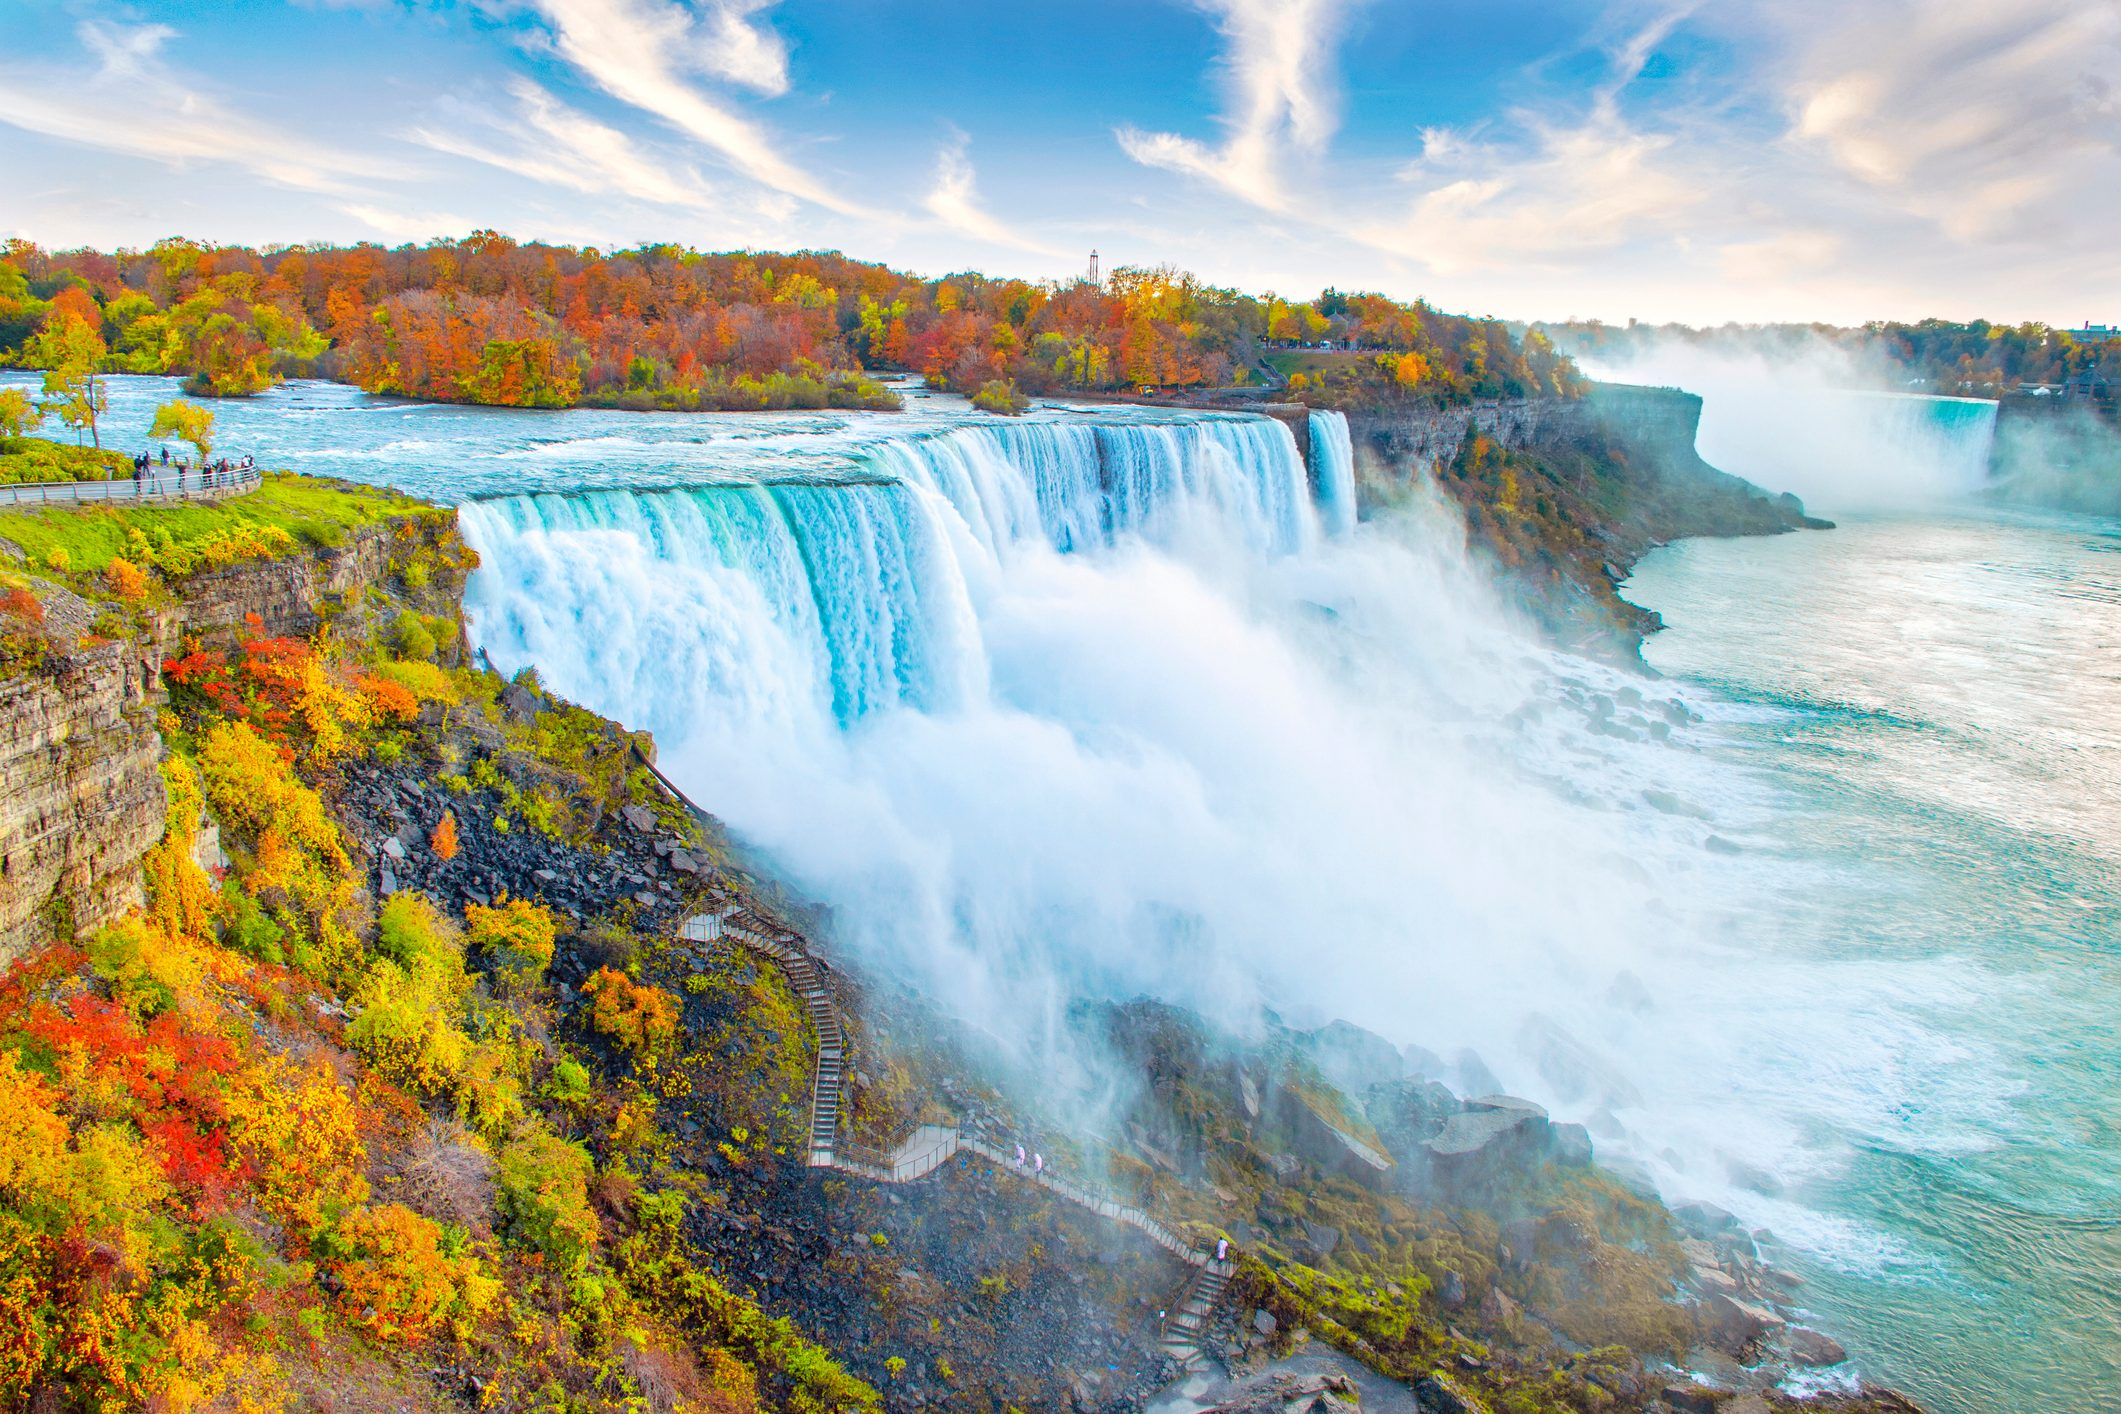 Niagara Falls including American Falls in New York in the foreground and Horseshoe Falls in Canada in background, with autumn leaf colors